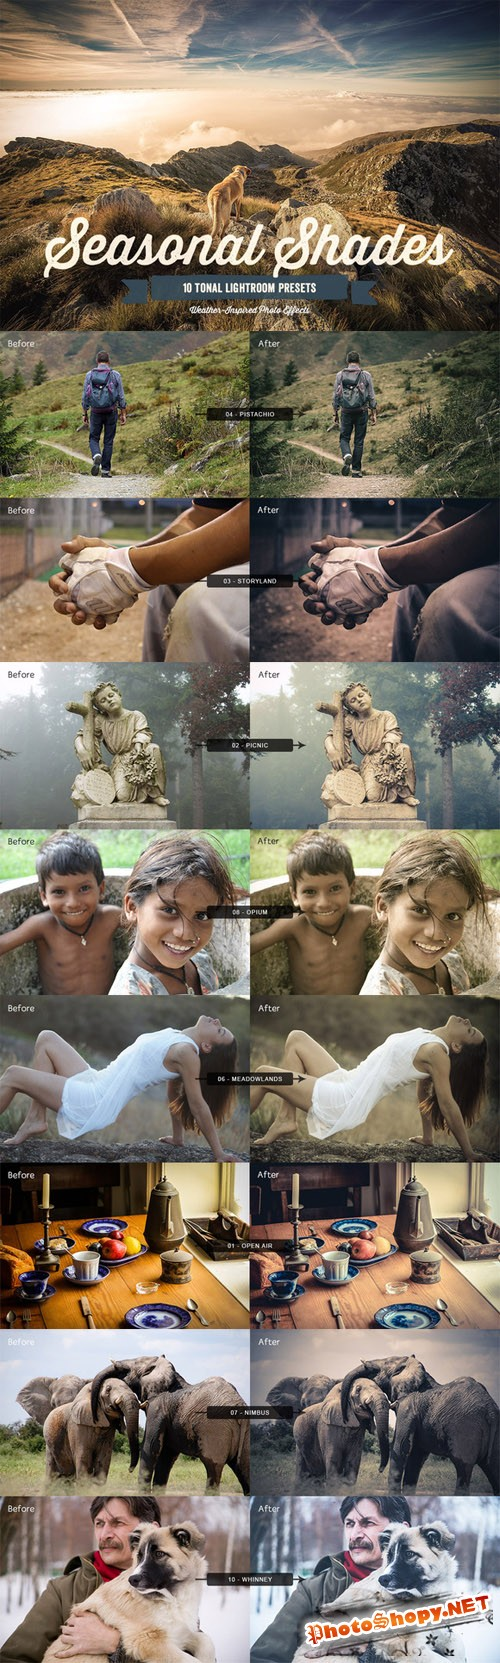 CreativeMarket - Seasonal Shades Lightroom Presets 1